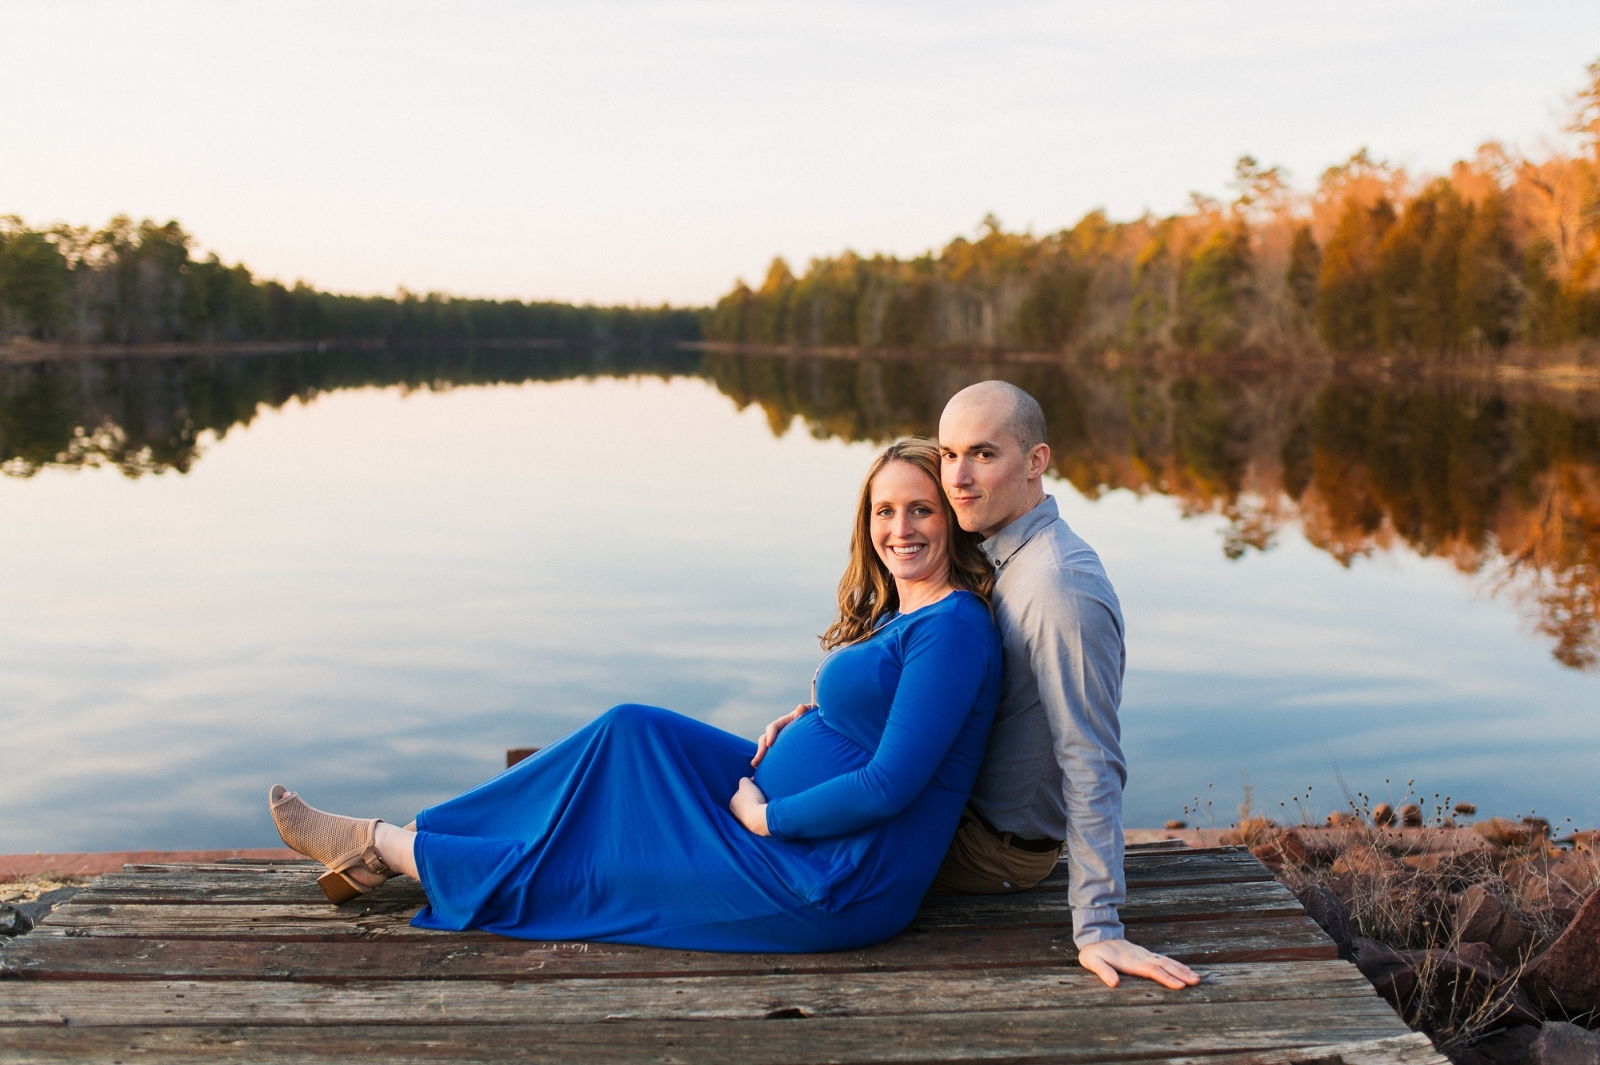 Mom and Dad sit by the lake at Batsto Village in NJ at sunset maternity session.